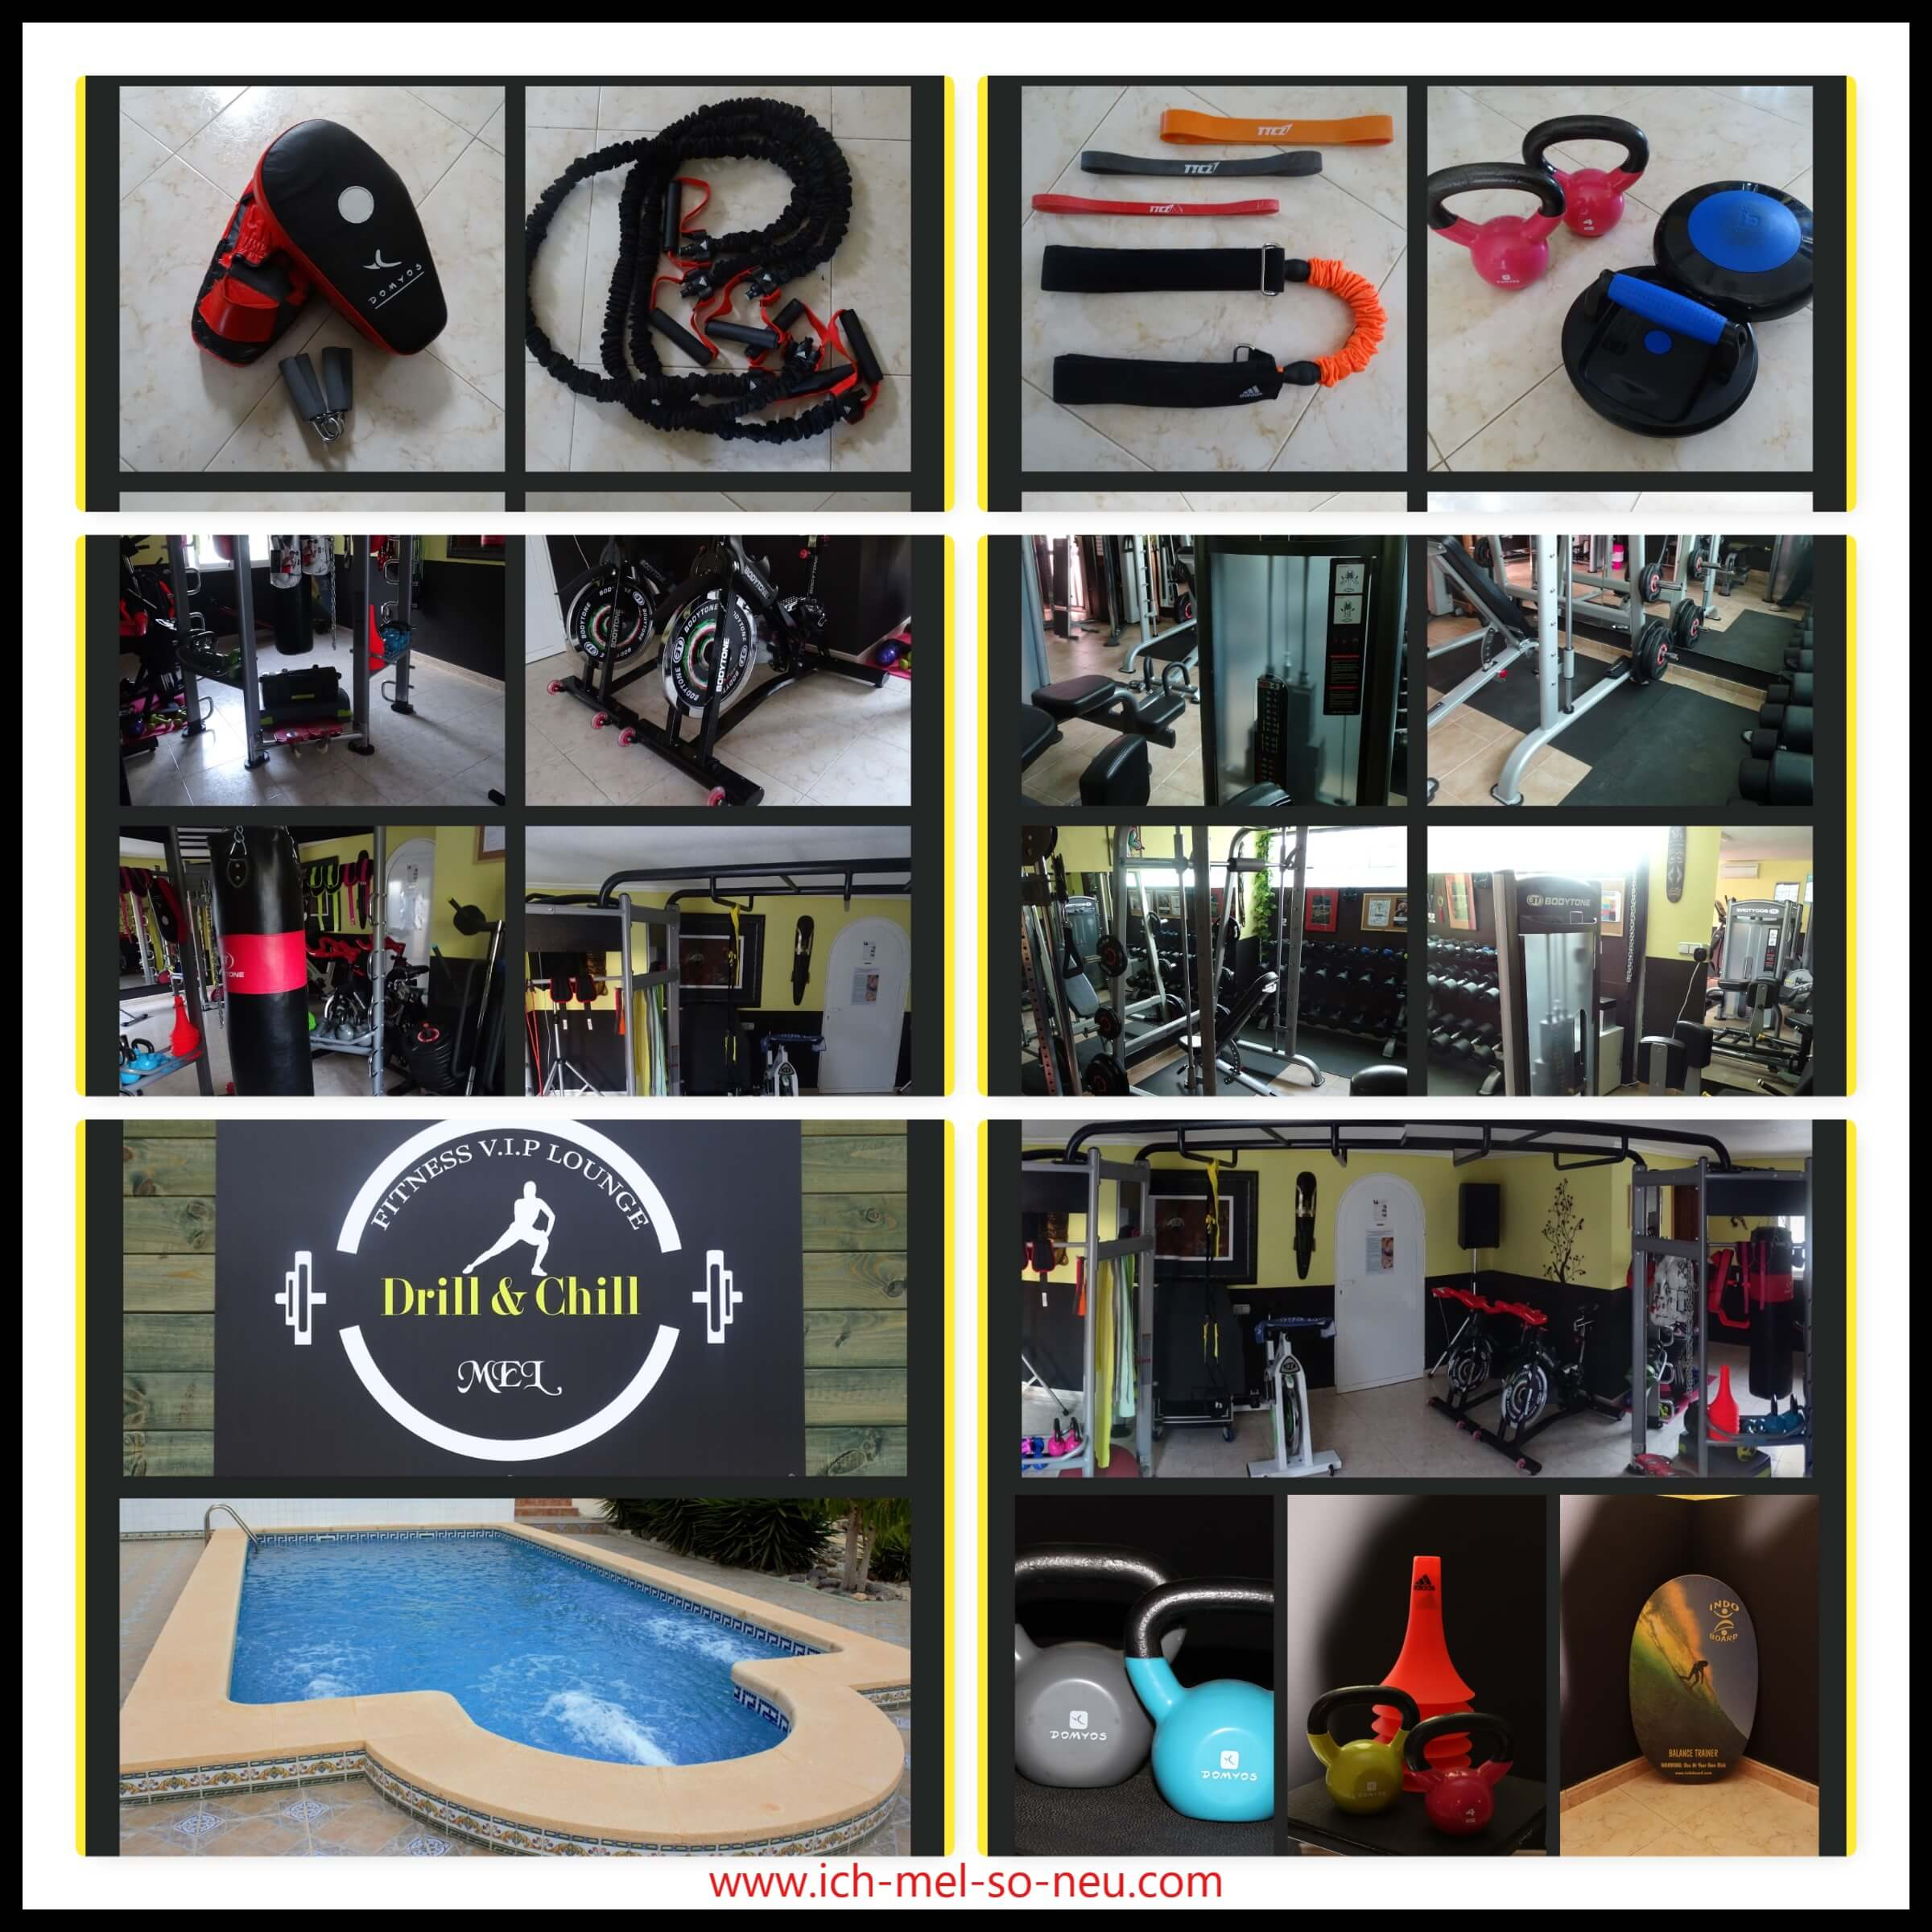 Fitness VIP Lounge